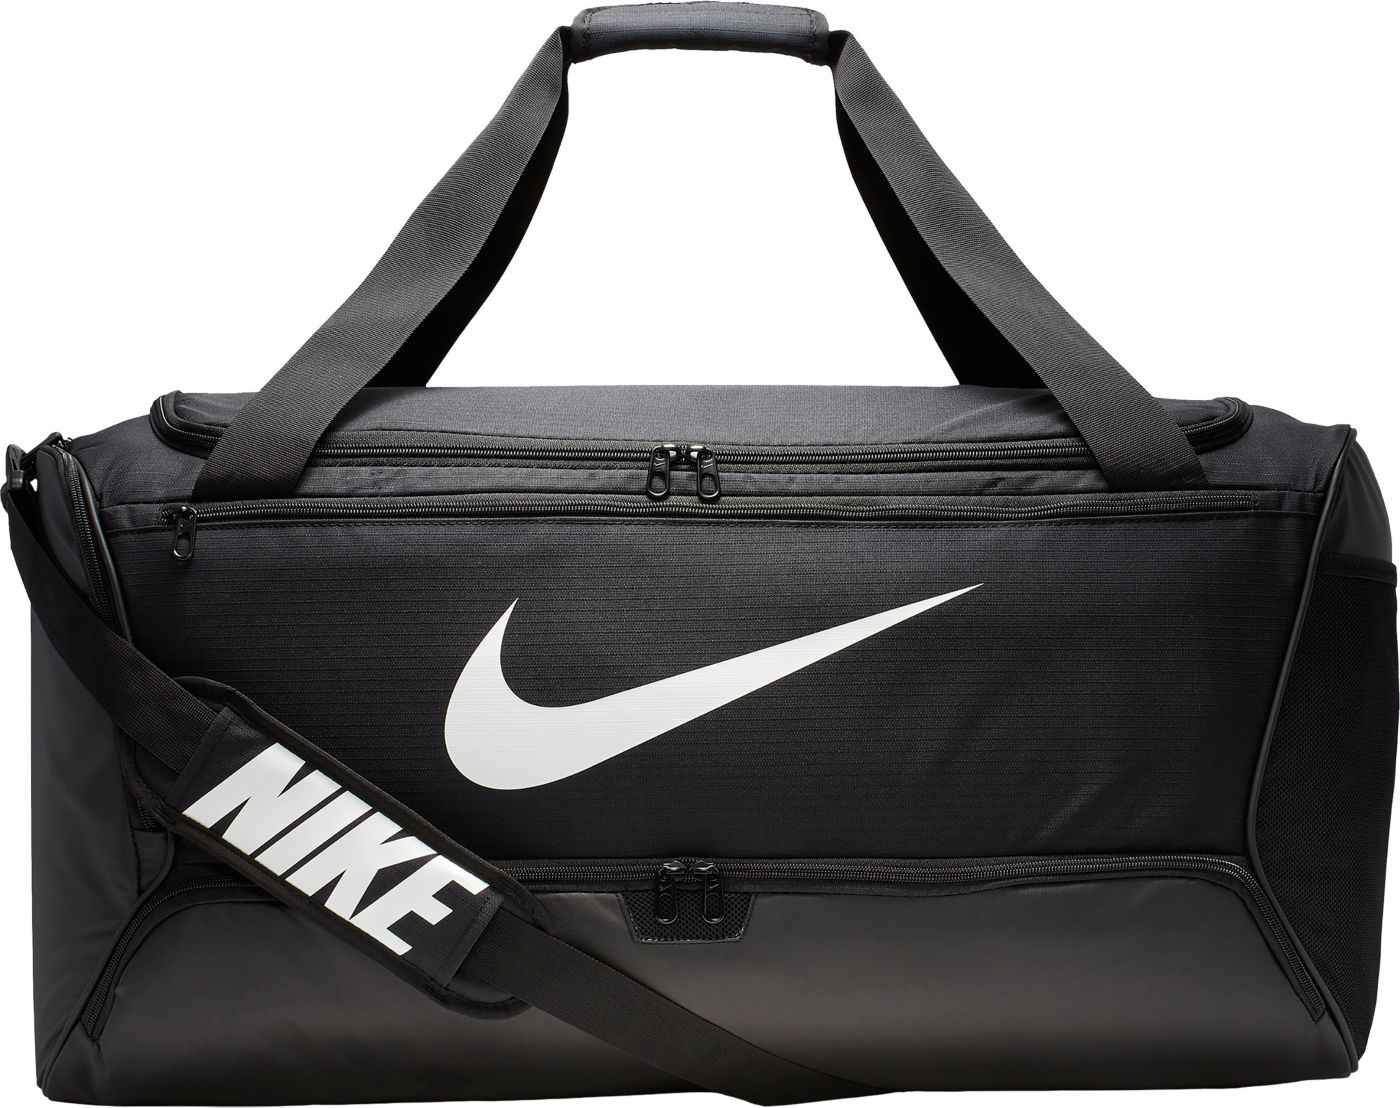 Nike Brasilia 9.0 Large Training Duffle Bag